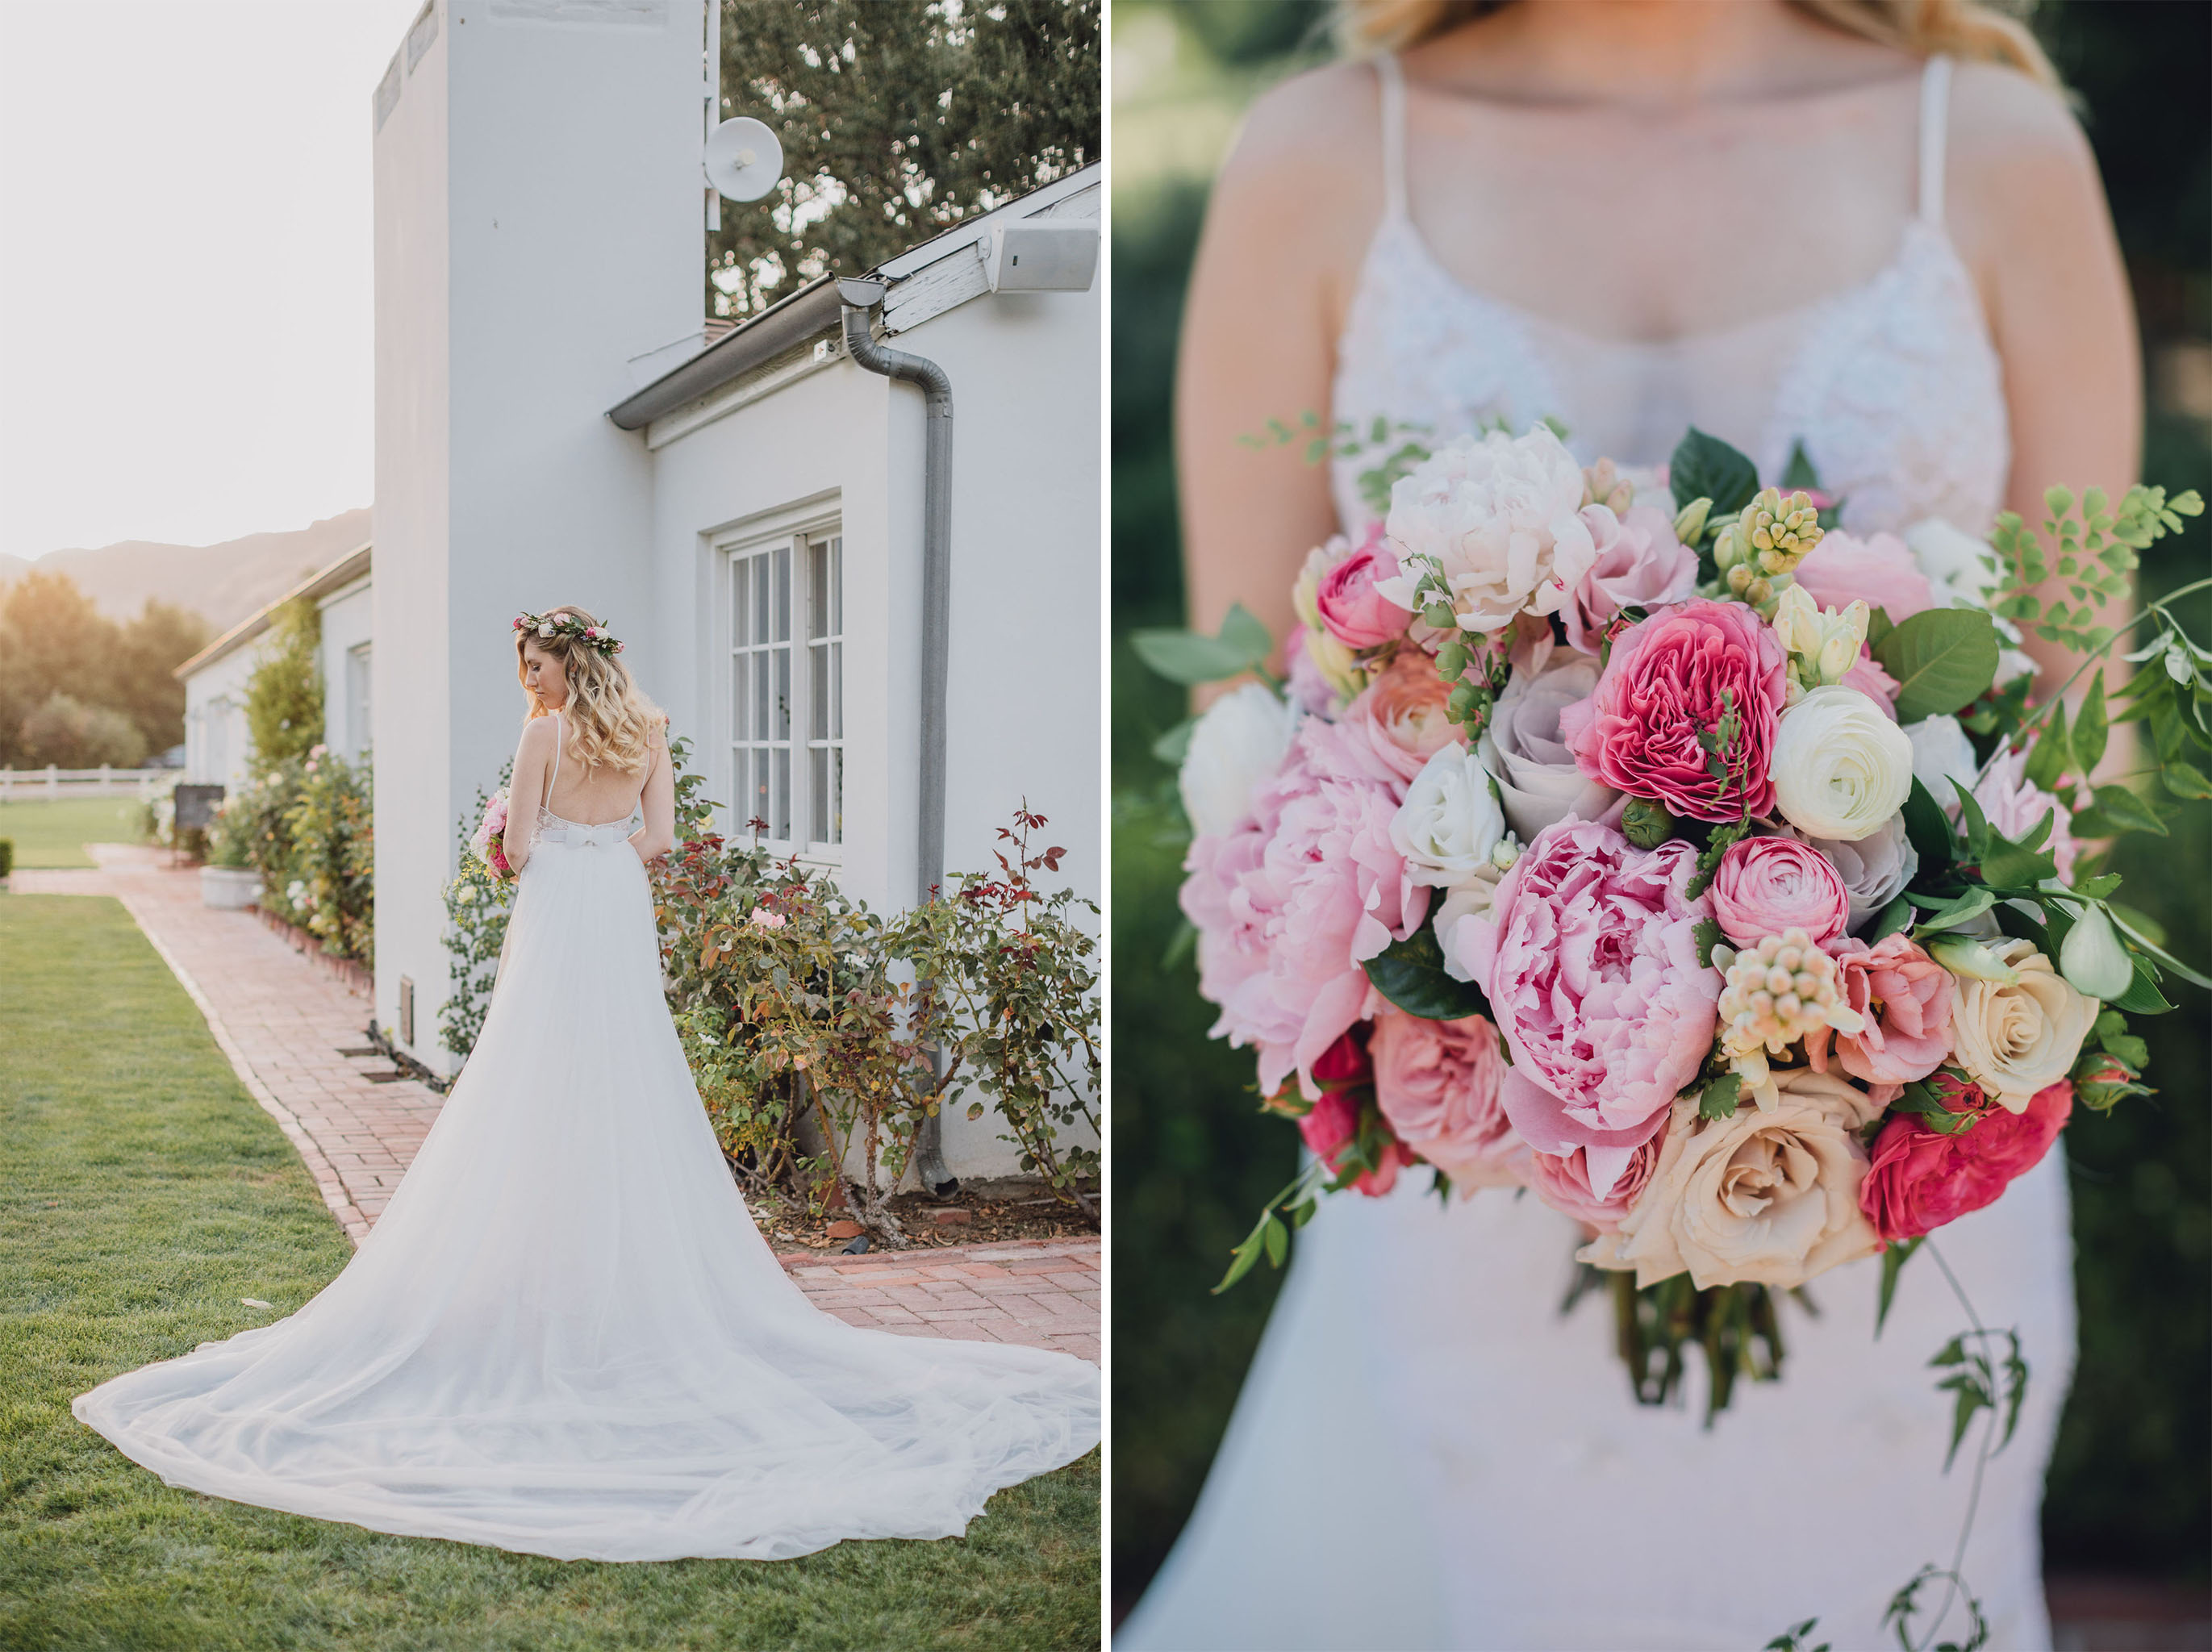 Bride Wedding Dress | Triunfo Creek Vineyards